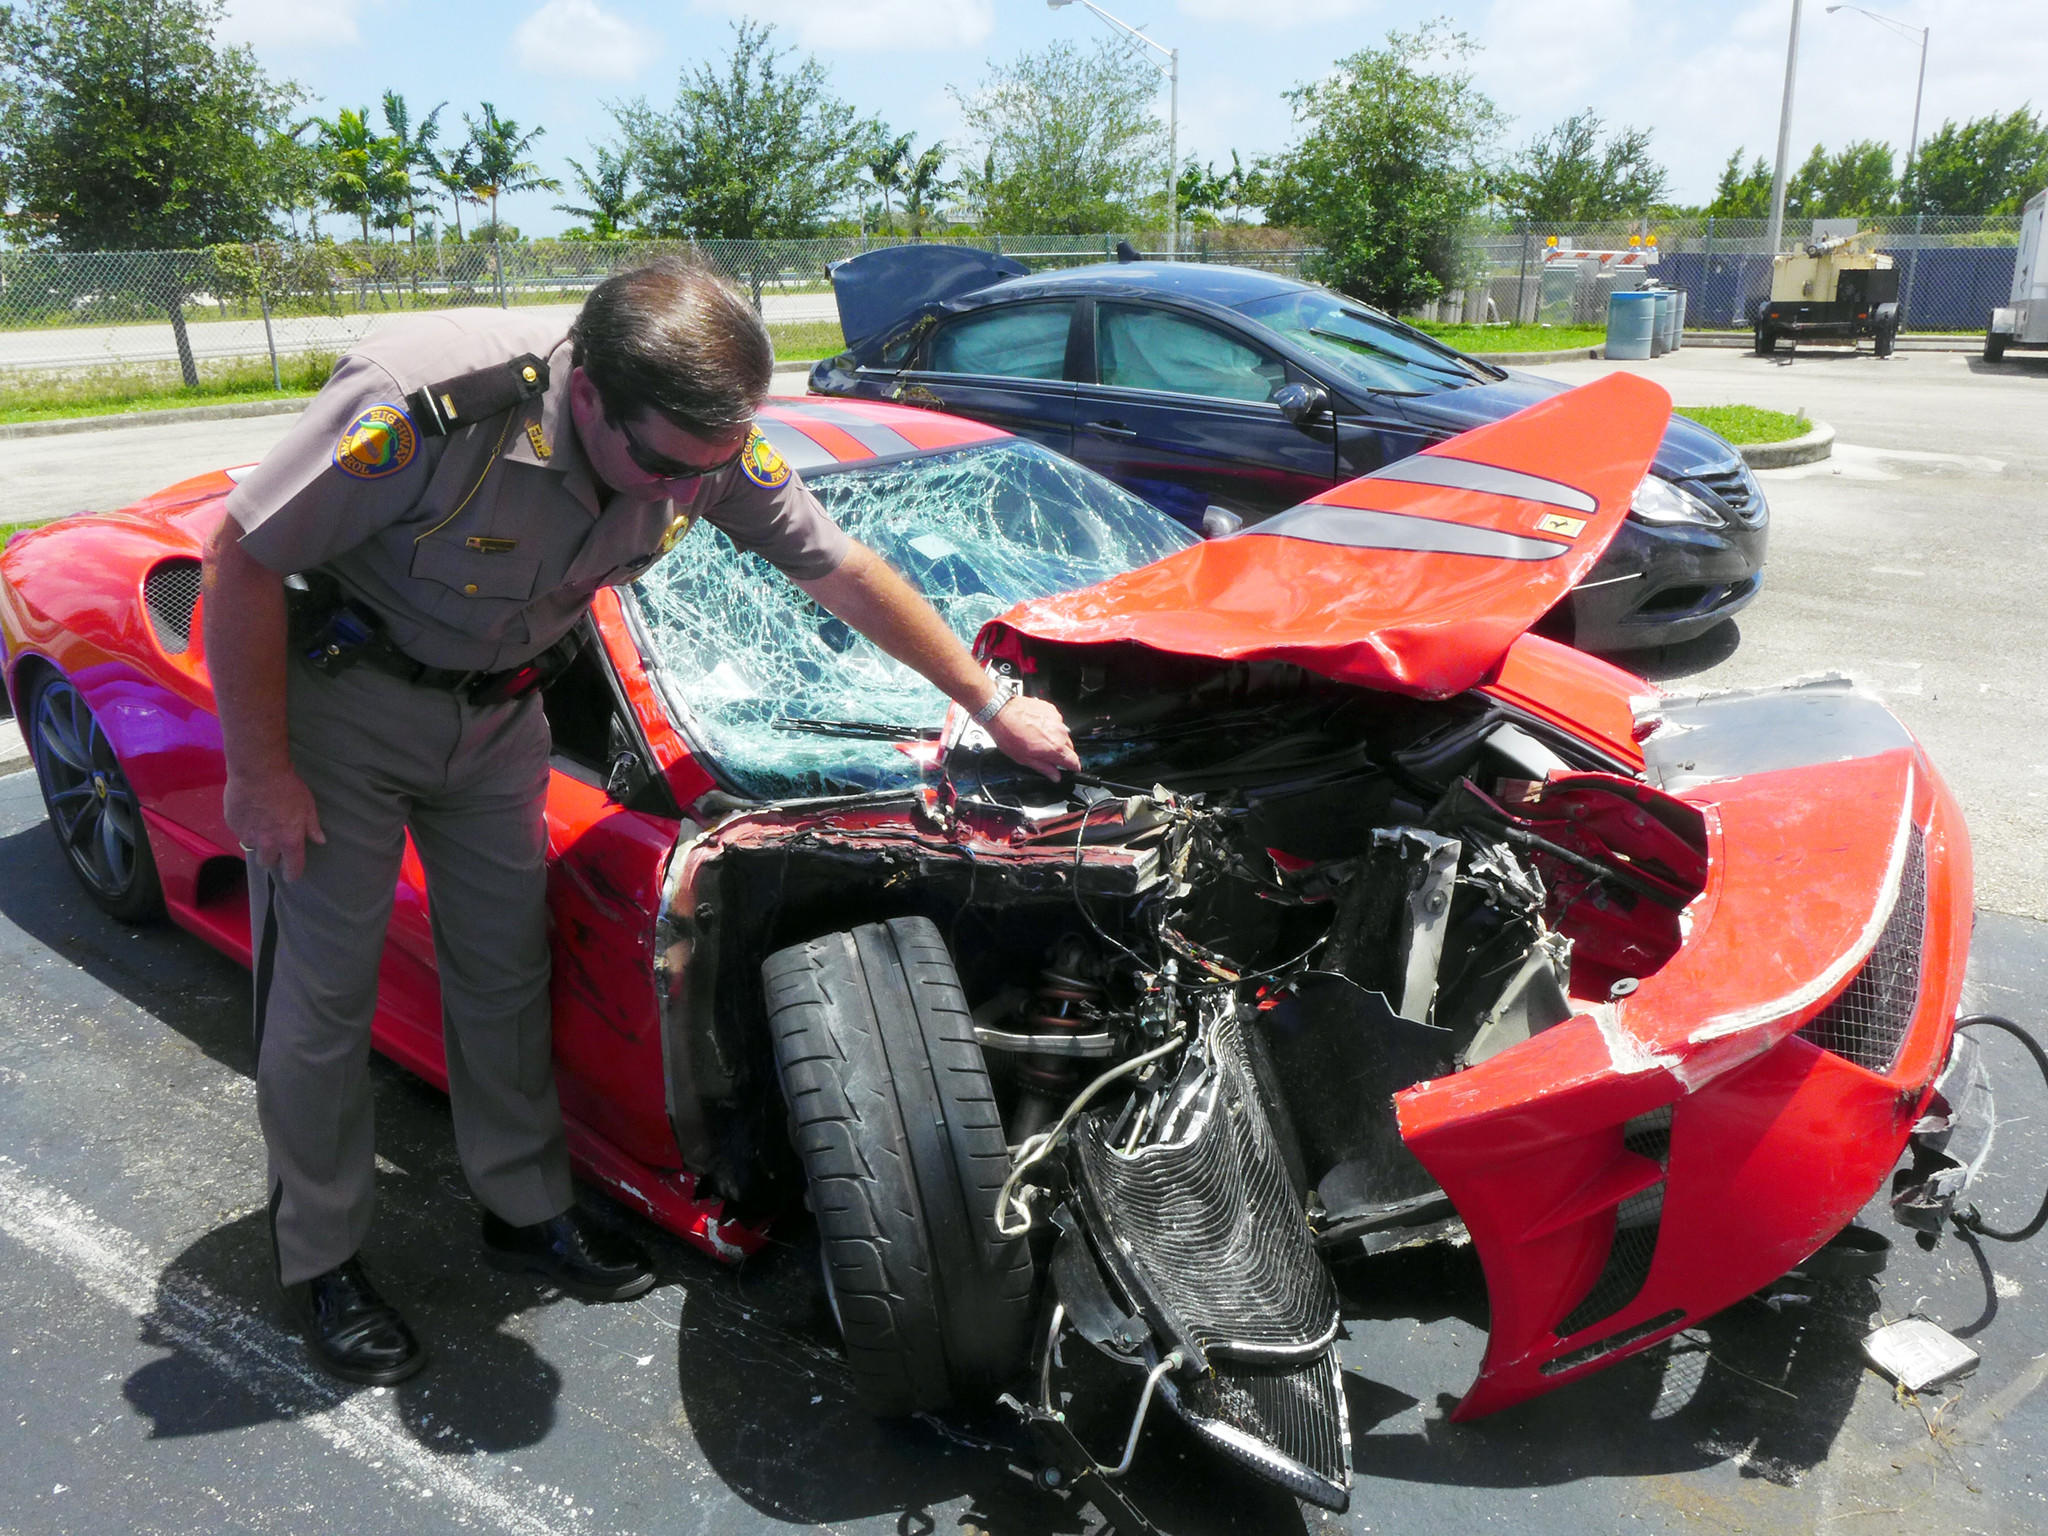 Lt. Mike Hughes of Florida Hway Patrol, checks out the damage on a Ferrari that rear-ended a Hyundai Sonata on Interstate 75. The driver of the Ferrari fled the scene.